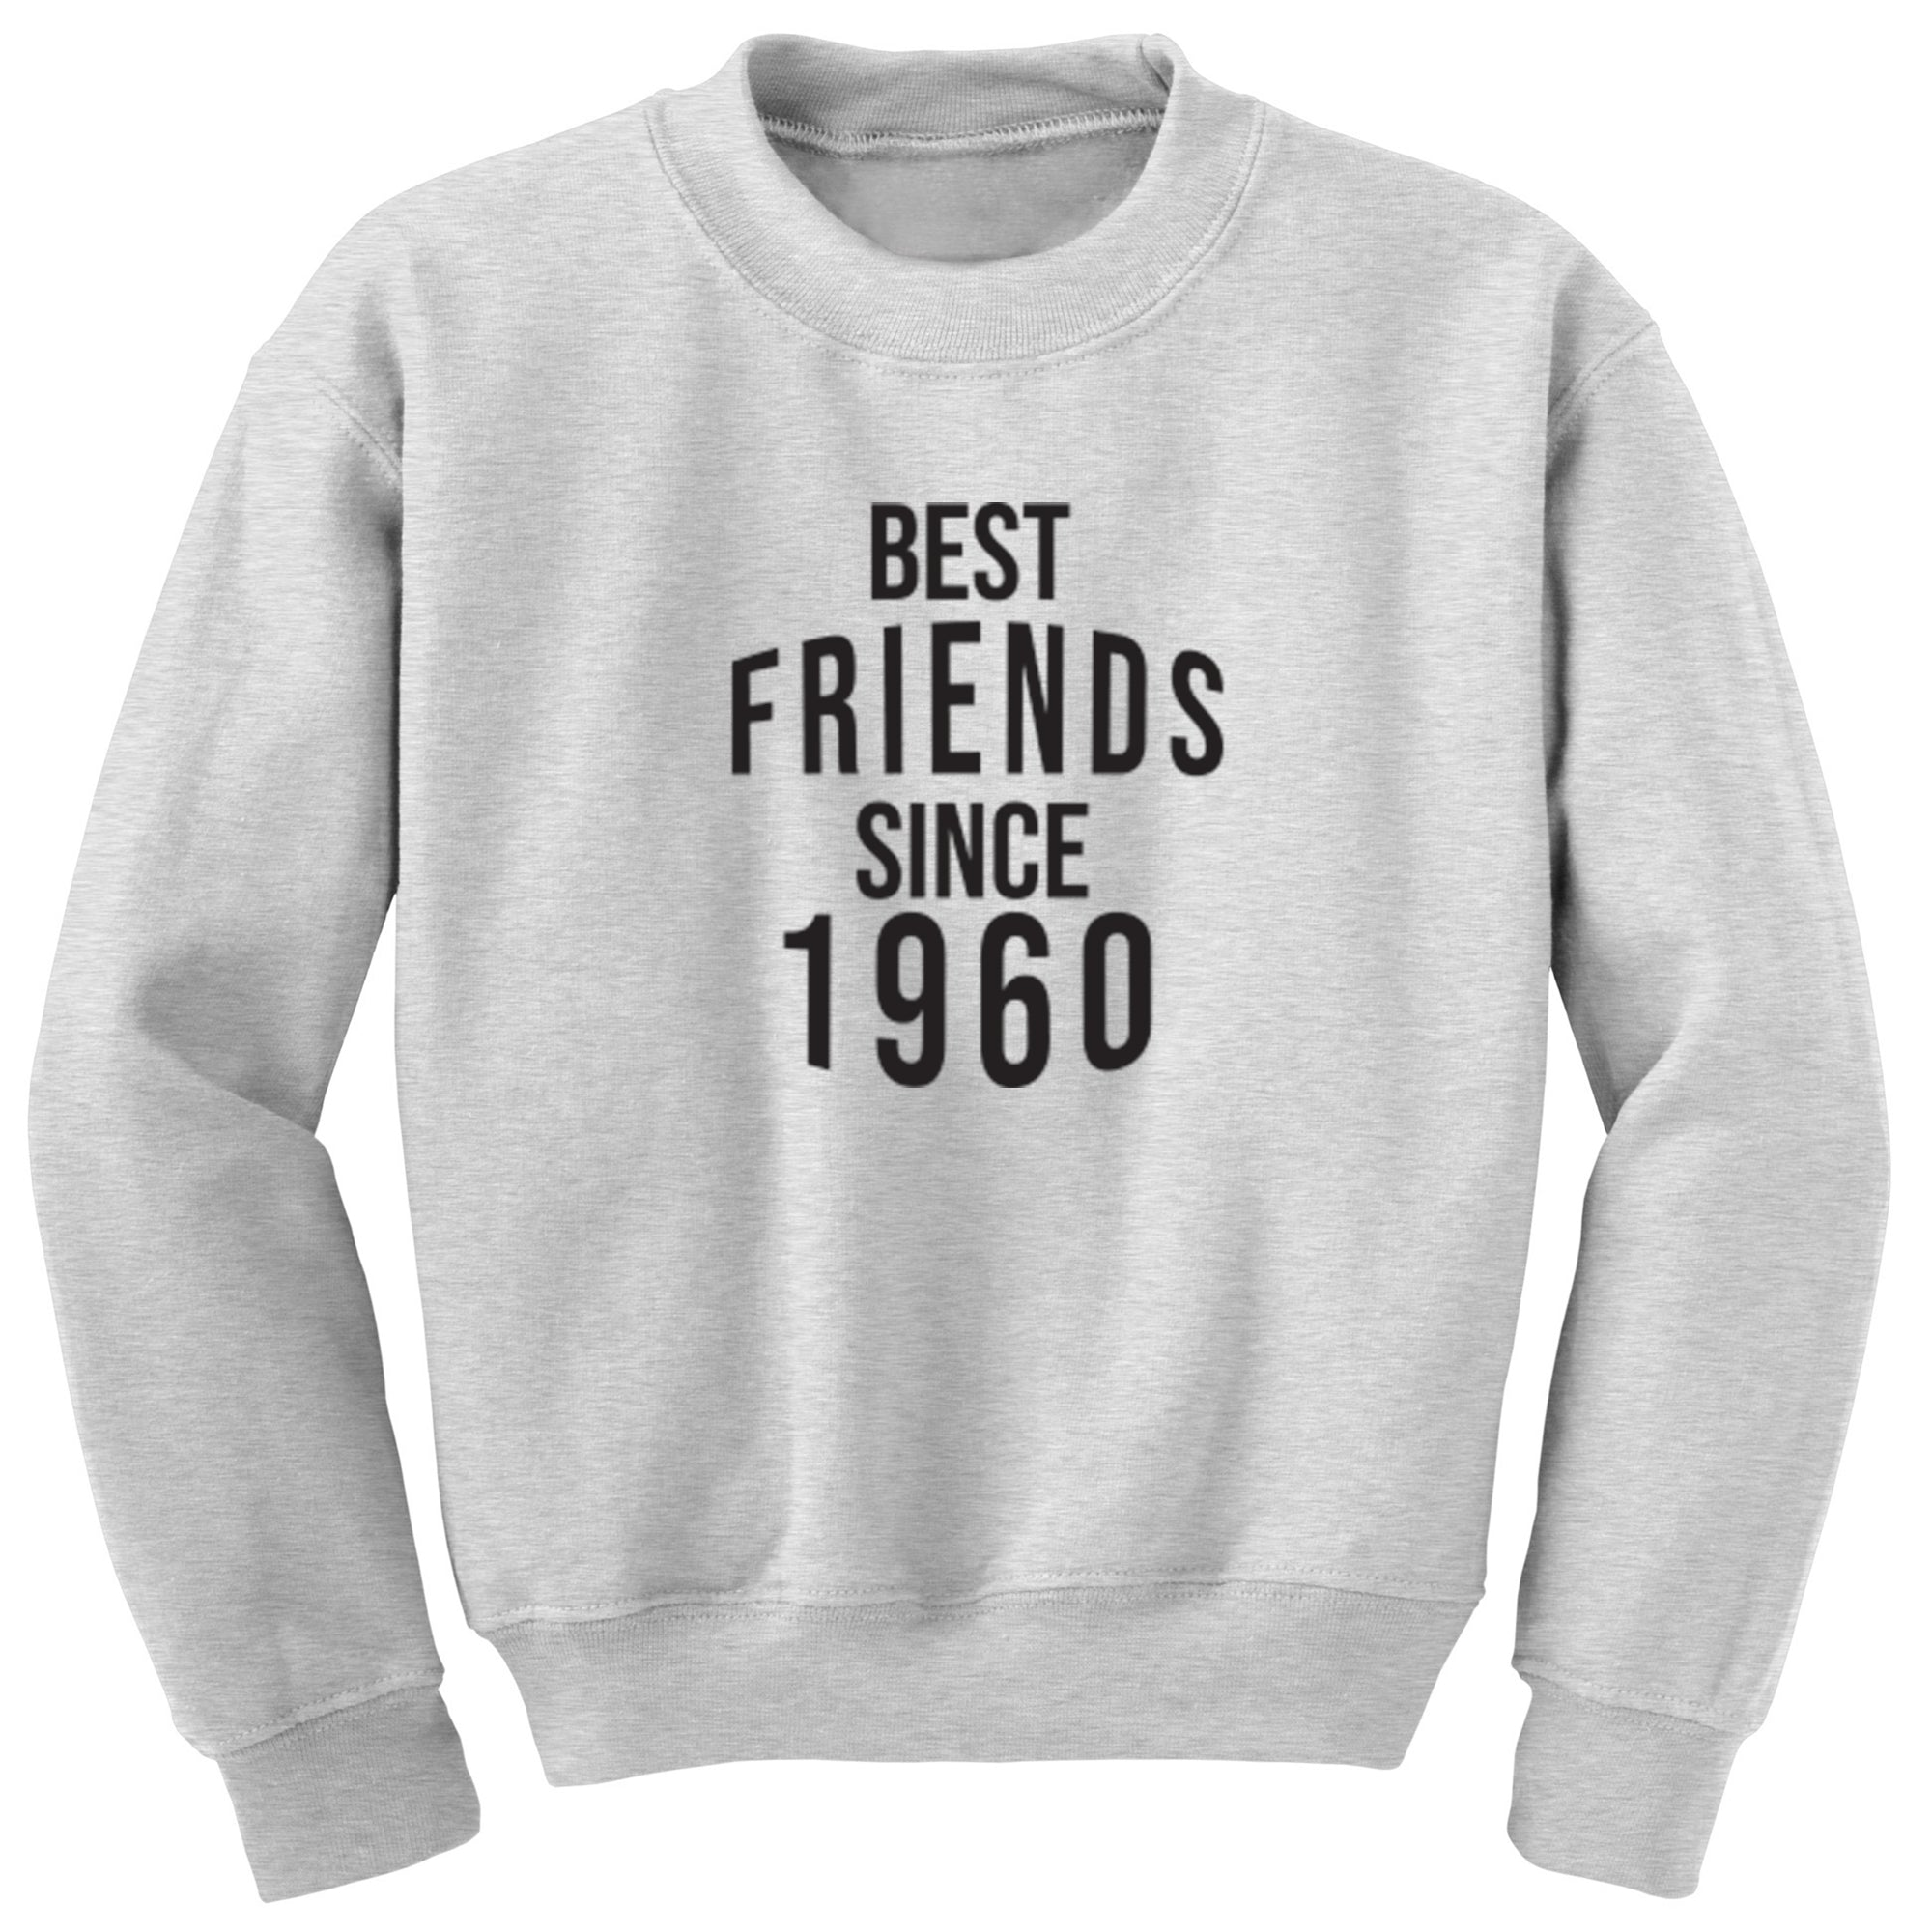 Best Friends Since 1960 Unisex Jumper S0539 - Illustrated Identity Ltd.